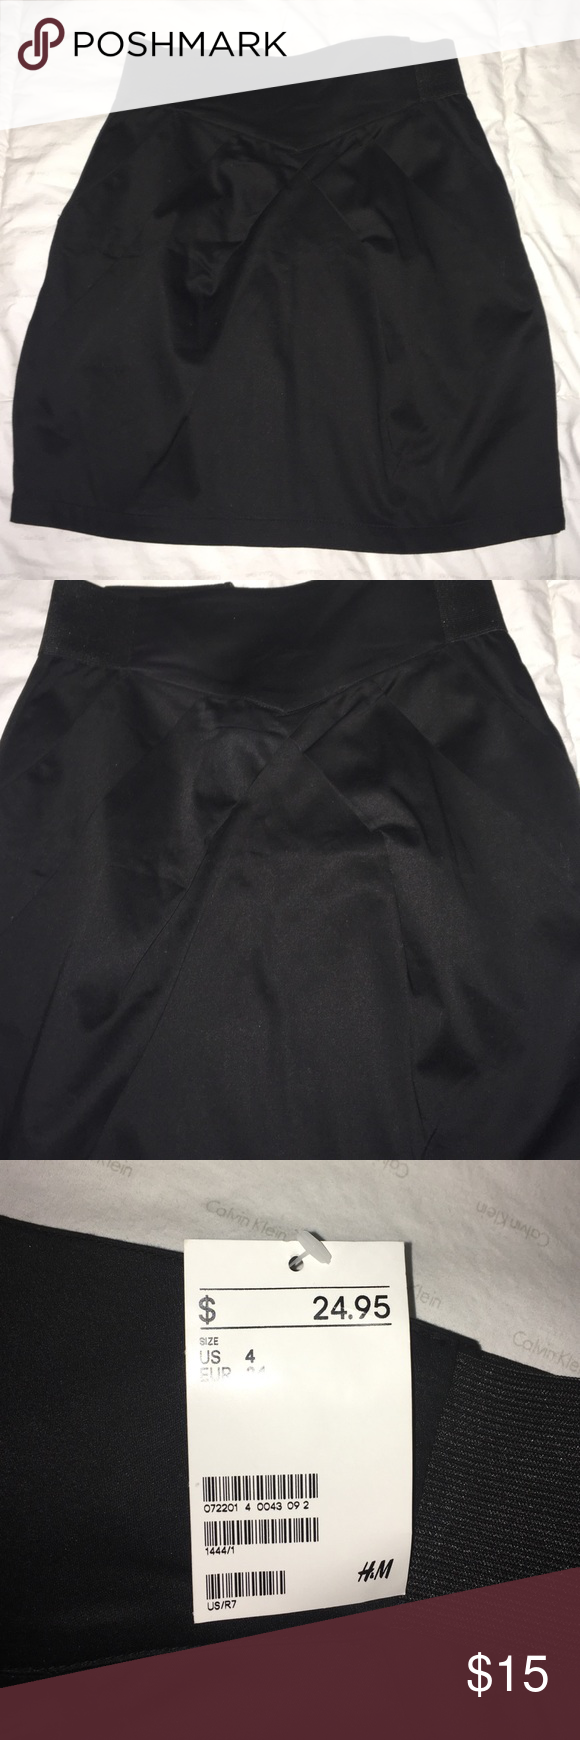 H&M Mini skirt NWT Black Mini skirt H&M Skirts Mini